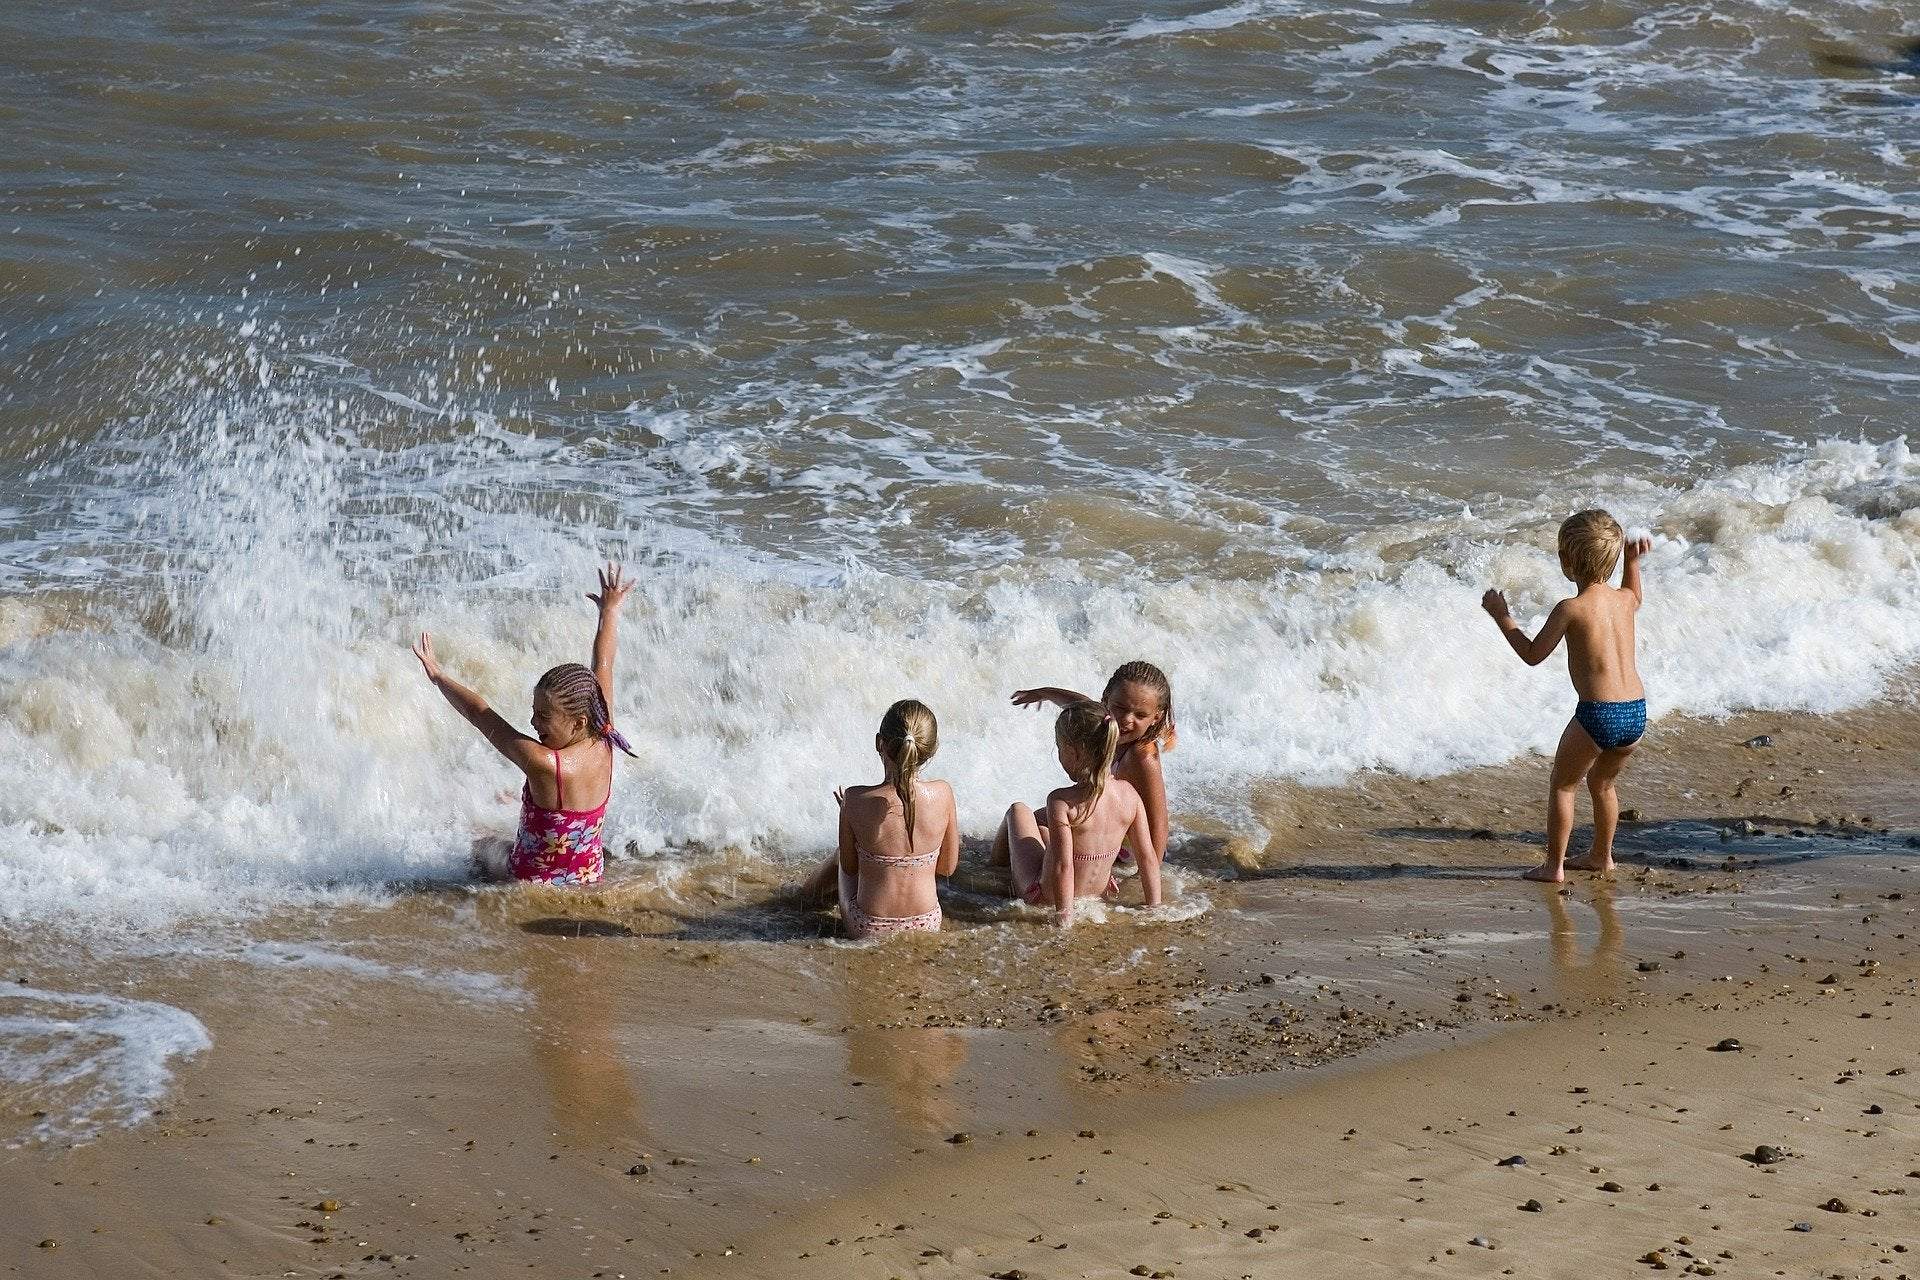 TT Strange Times - A Staycation Summer - the couple were particularly keen for children to experience the seaside, as they had done themselves many years previously.